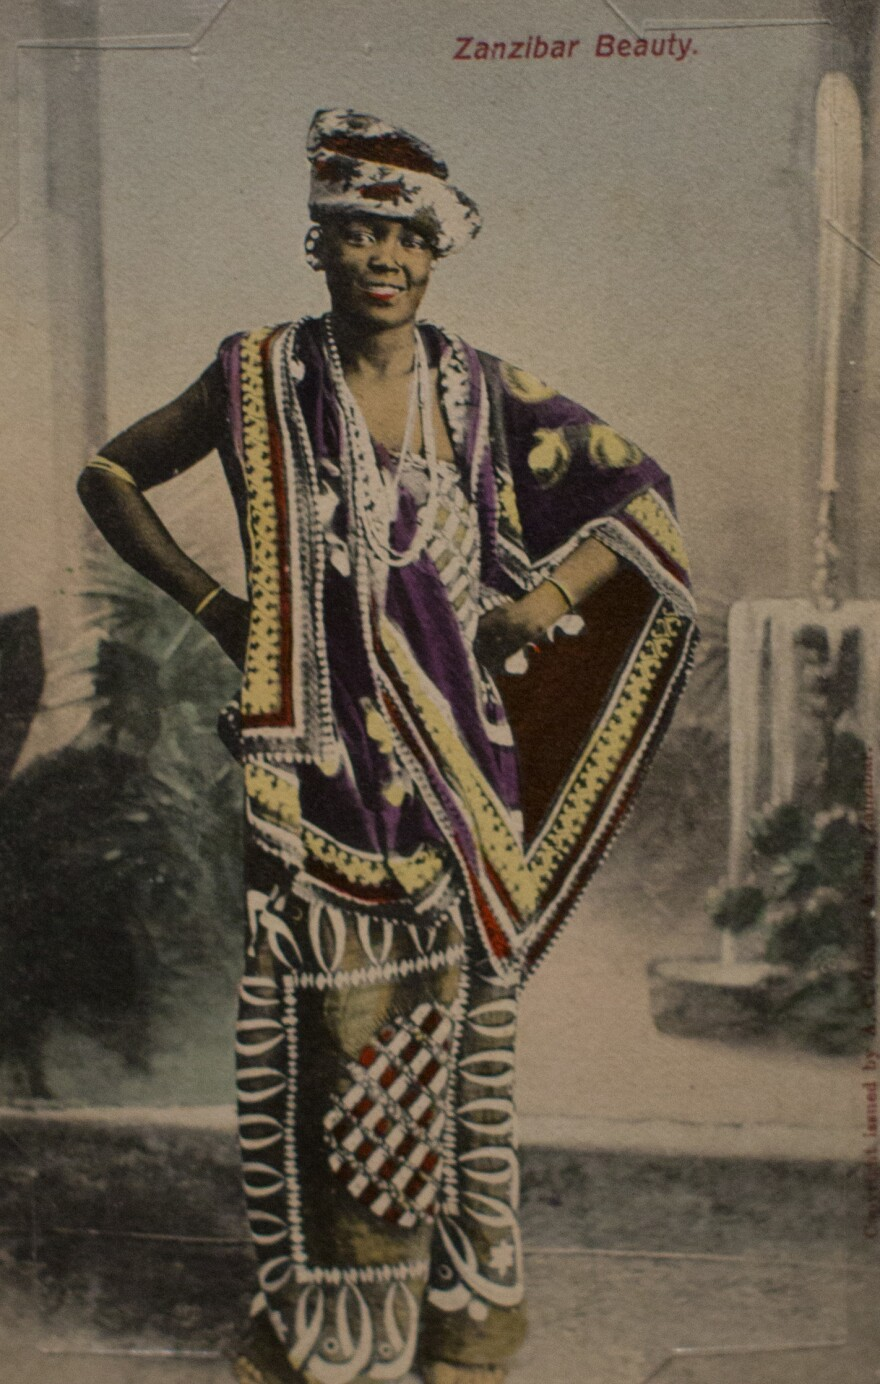 <em>Zanzibar Beauty</em> by A.C. Gomes & Son. Photograph taken before 1900; postcard printed between 1907 and 1908.